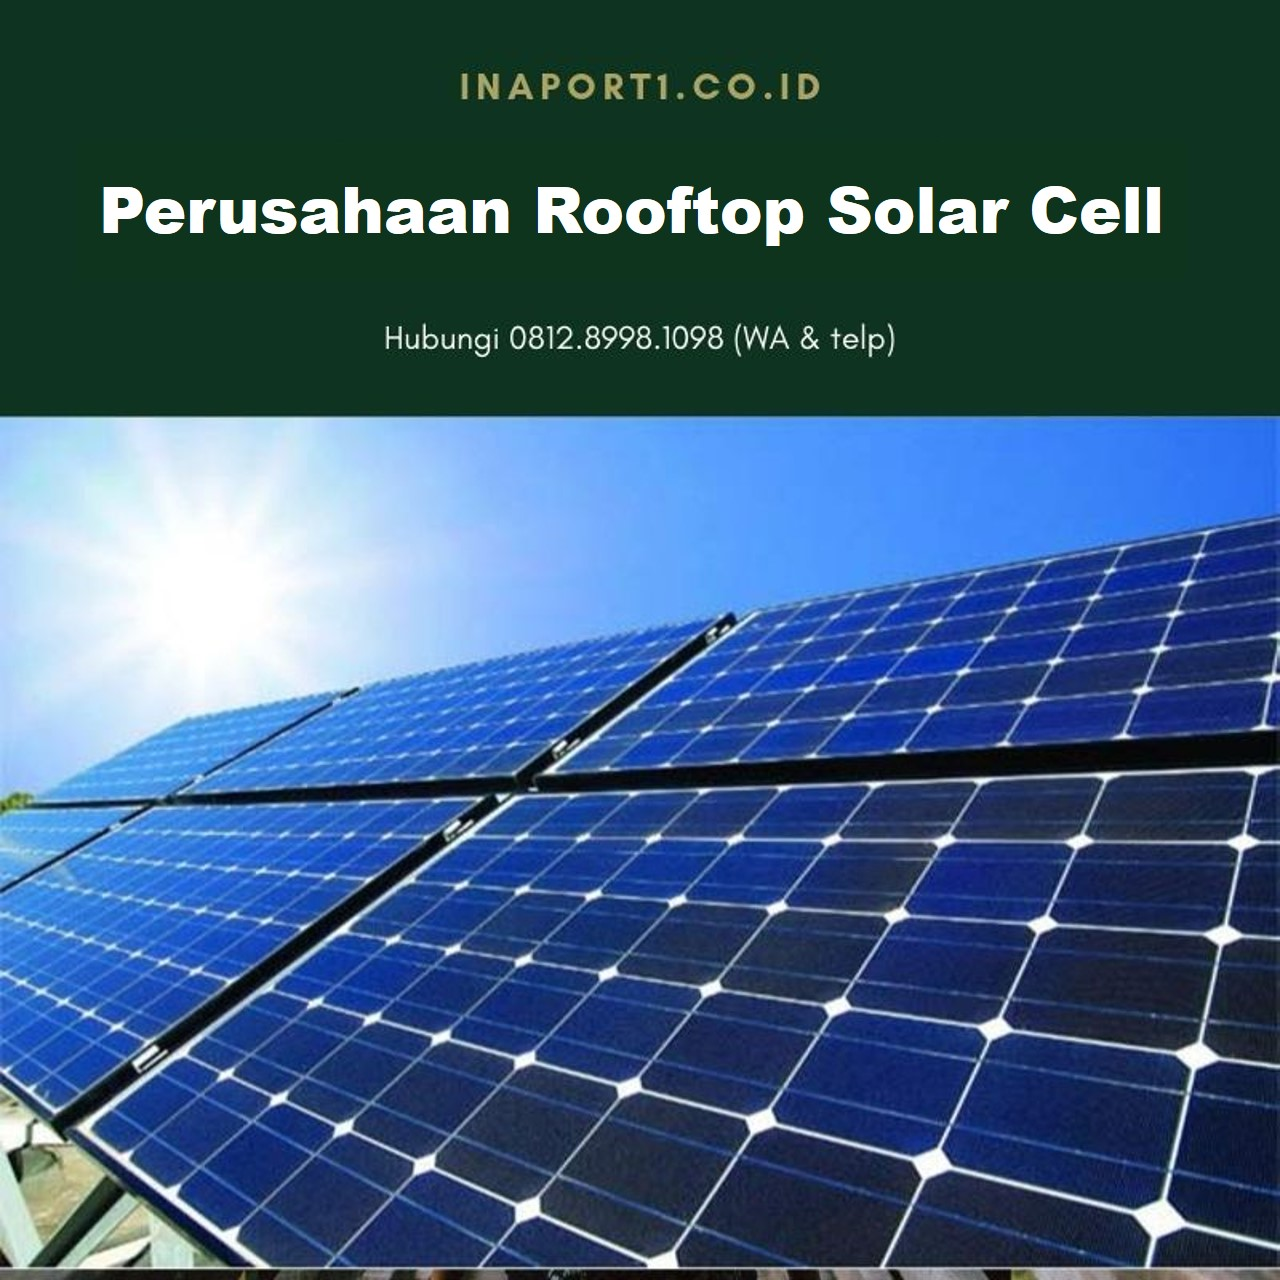 Panel Surya Rooftop Tegal, Rooftop Solar Panel Tegal, Solar Panel On Rooftop Tegal, Solar Panel Rooftop Tegal, Rooftop Panel Surya Tegal, Rooftop Solar Panel Indonesia Tegal, Rooftop Panel Surya Rumah Tegal, Rooftop Panel Surya Pabrik Tegal, Rooftop Panel Surya Perusahaan Tegal, Rooftop Panel Surya Apartemen Tegal, Rooftop Panel Surya Apartment Tegal, Rooftop Panel Surya Perumahan Tegal, Rooftop Solar Panel Rumah Tegal, Rooftop Solar Panel Pabrik Tegal, Rooftop Solar Panel Perusahaan Tegal, Rooftop Solar Panel Apartemen Tegal, Rooftop Solar Panel Apartment Tegal, Rooftop Solar Panel Perumahan} Tegal